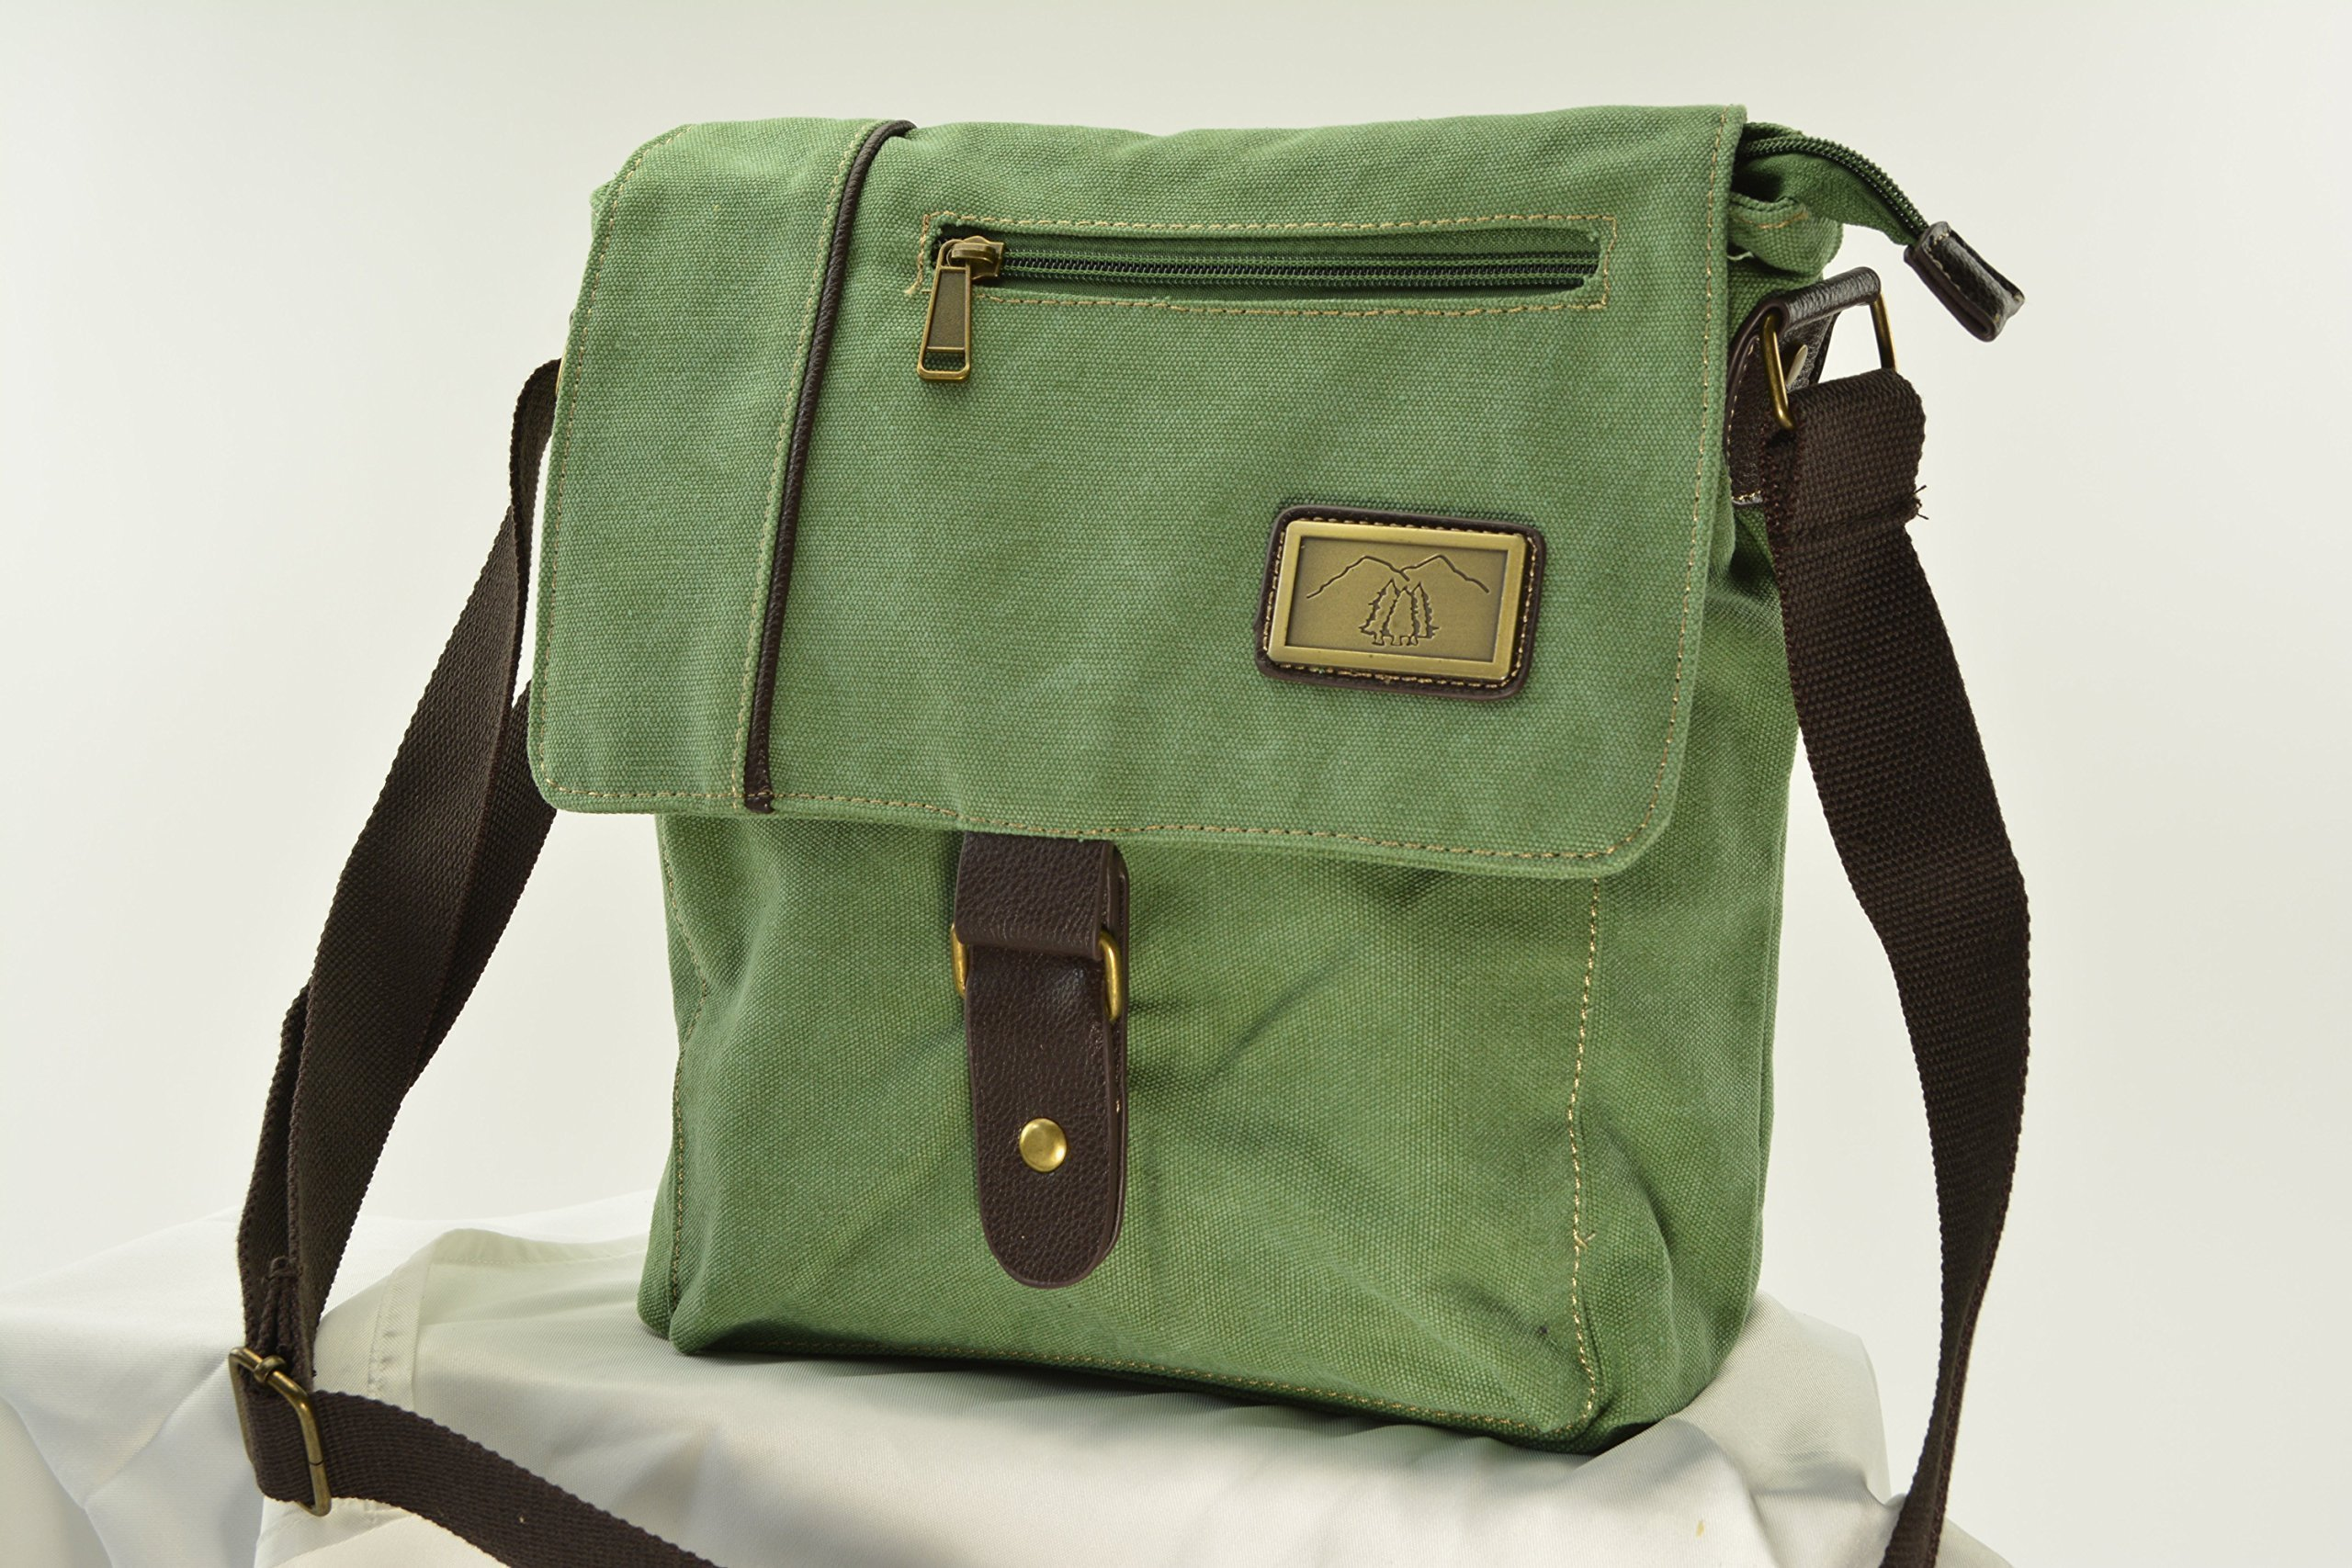 Green Canvas Messenger Concealed Carry Bag - Large Semi Auto or Revolver - Room for a Tablet or Laptop and More..an excellent choice for Men or Women!